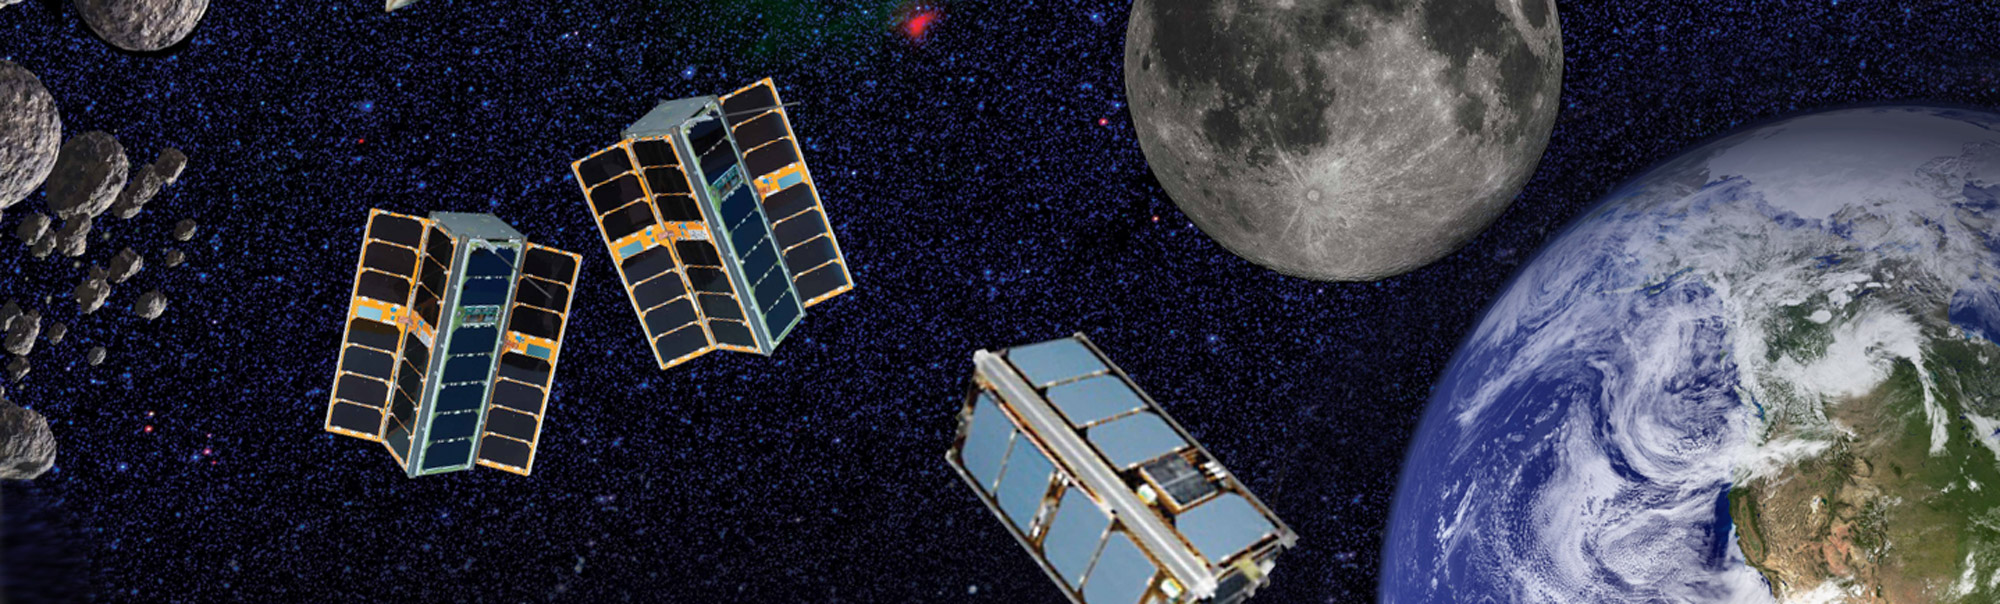 Cubesat-Based Low Frequency Radio Astronomy Missions